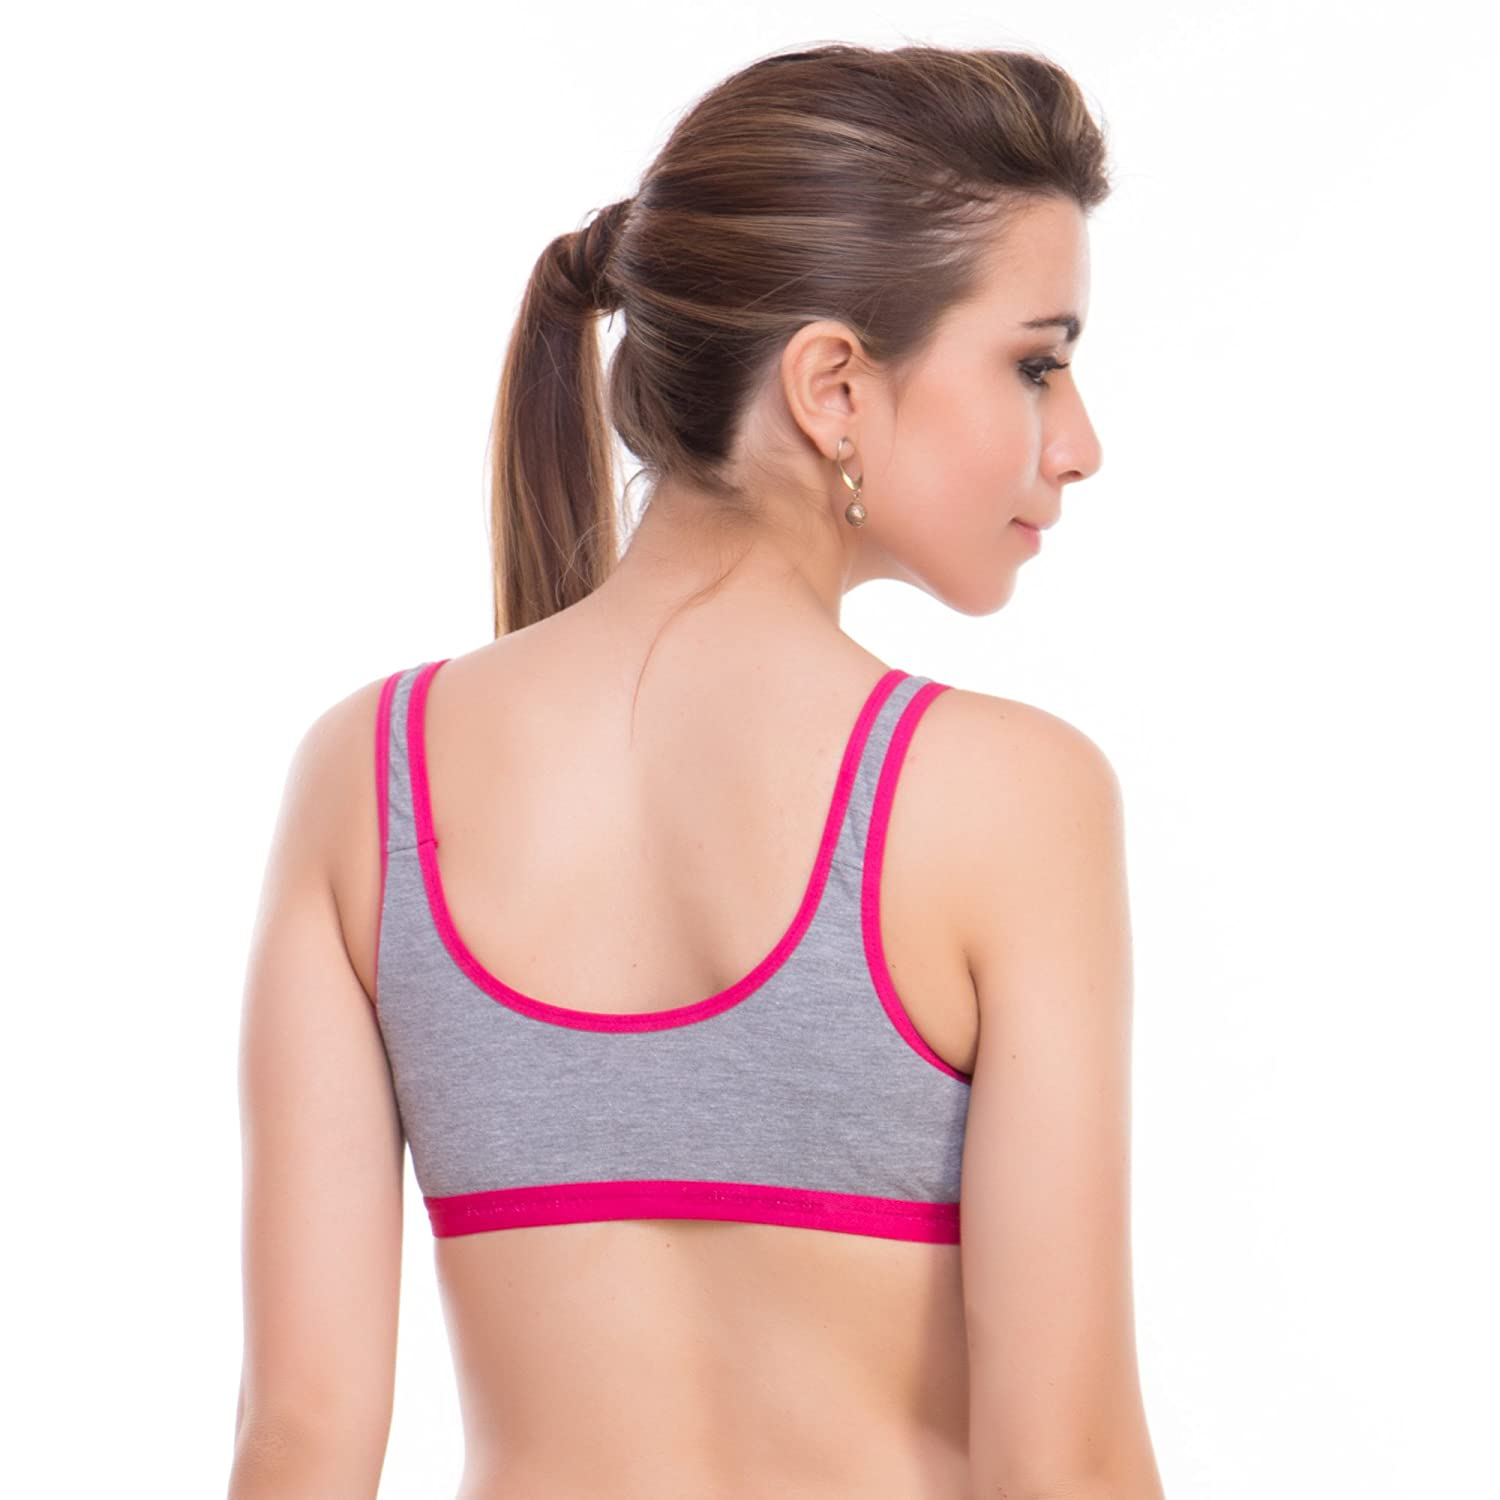 a1cbac76b Bodylable cotton mix Women Lingeries set pack of 3 in Multicolor   Amazon.in  Clothing   Accessories